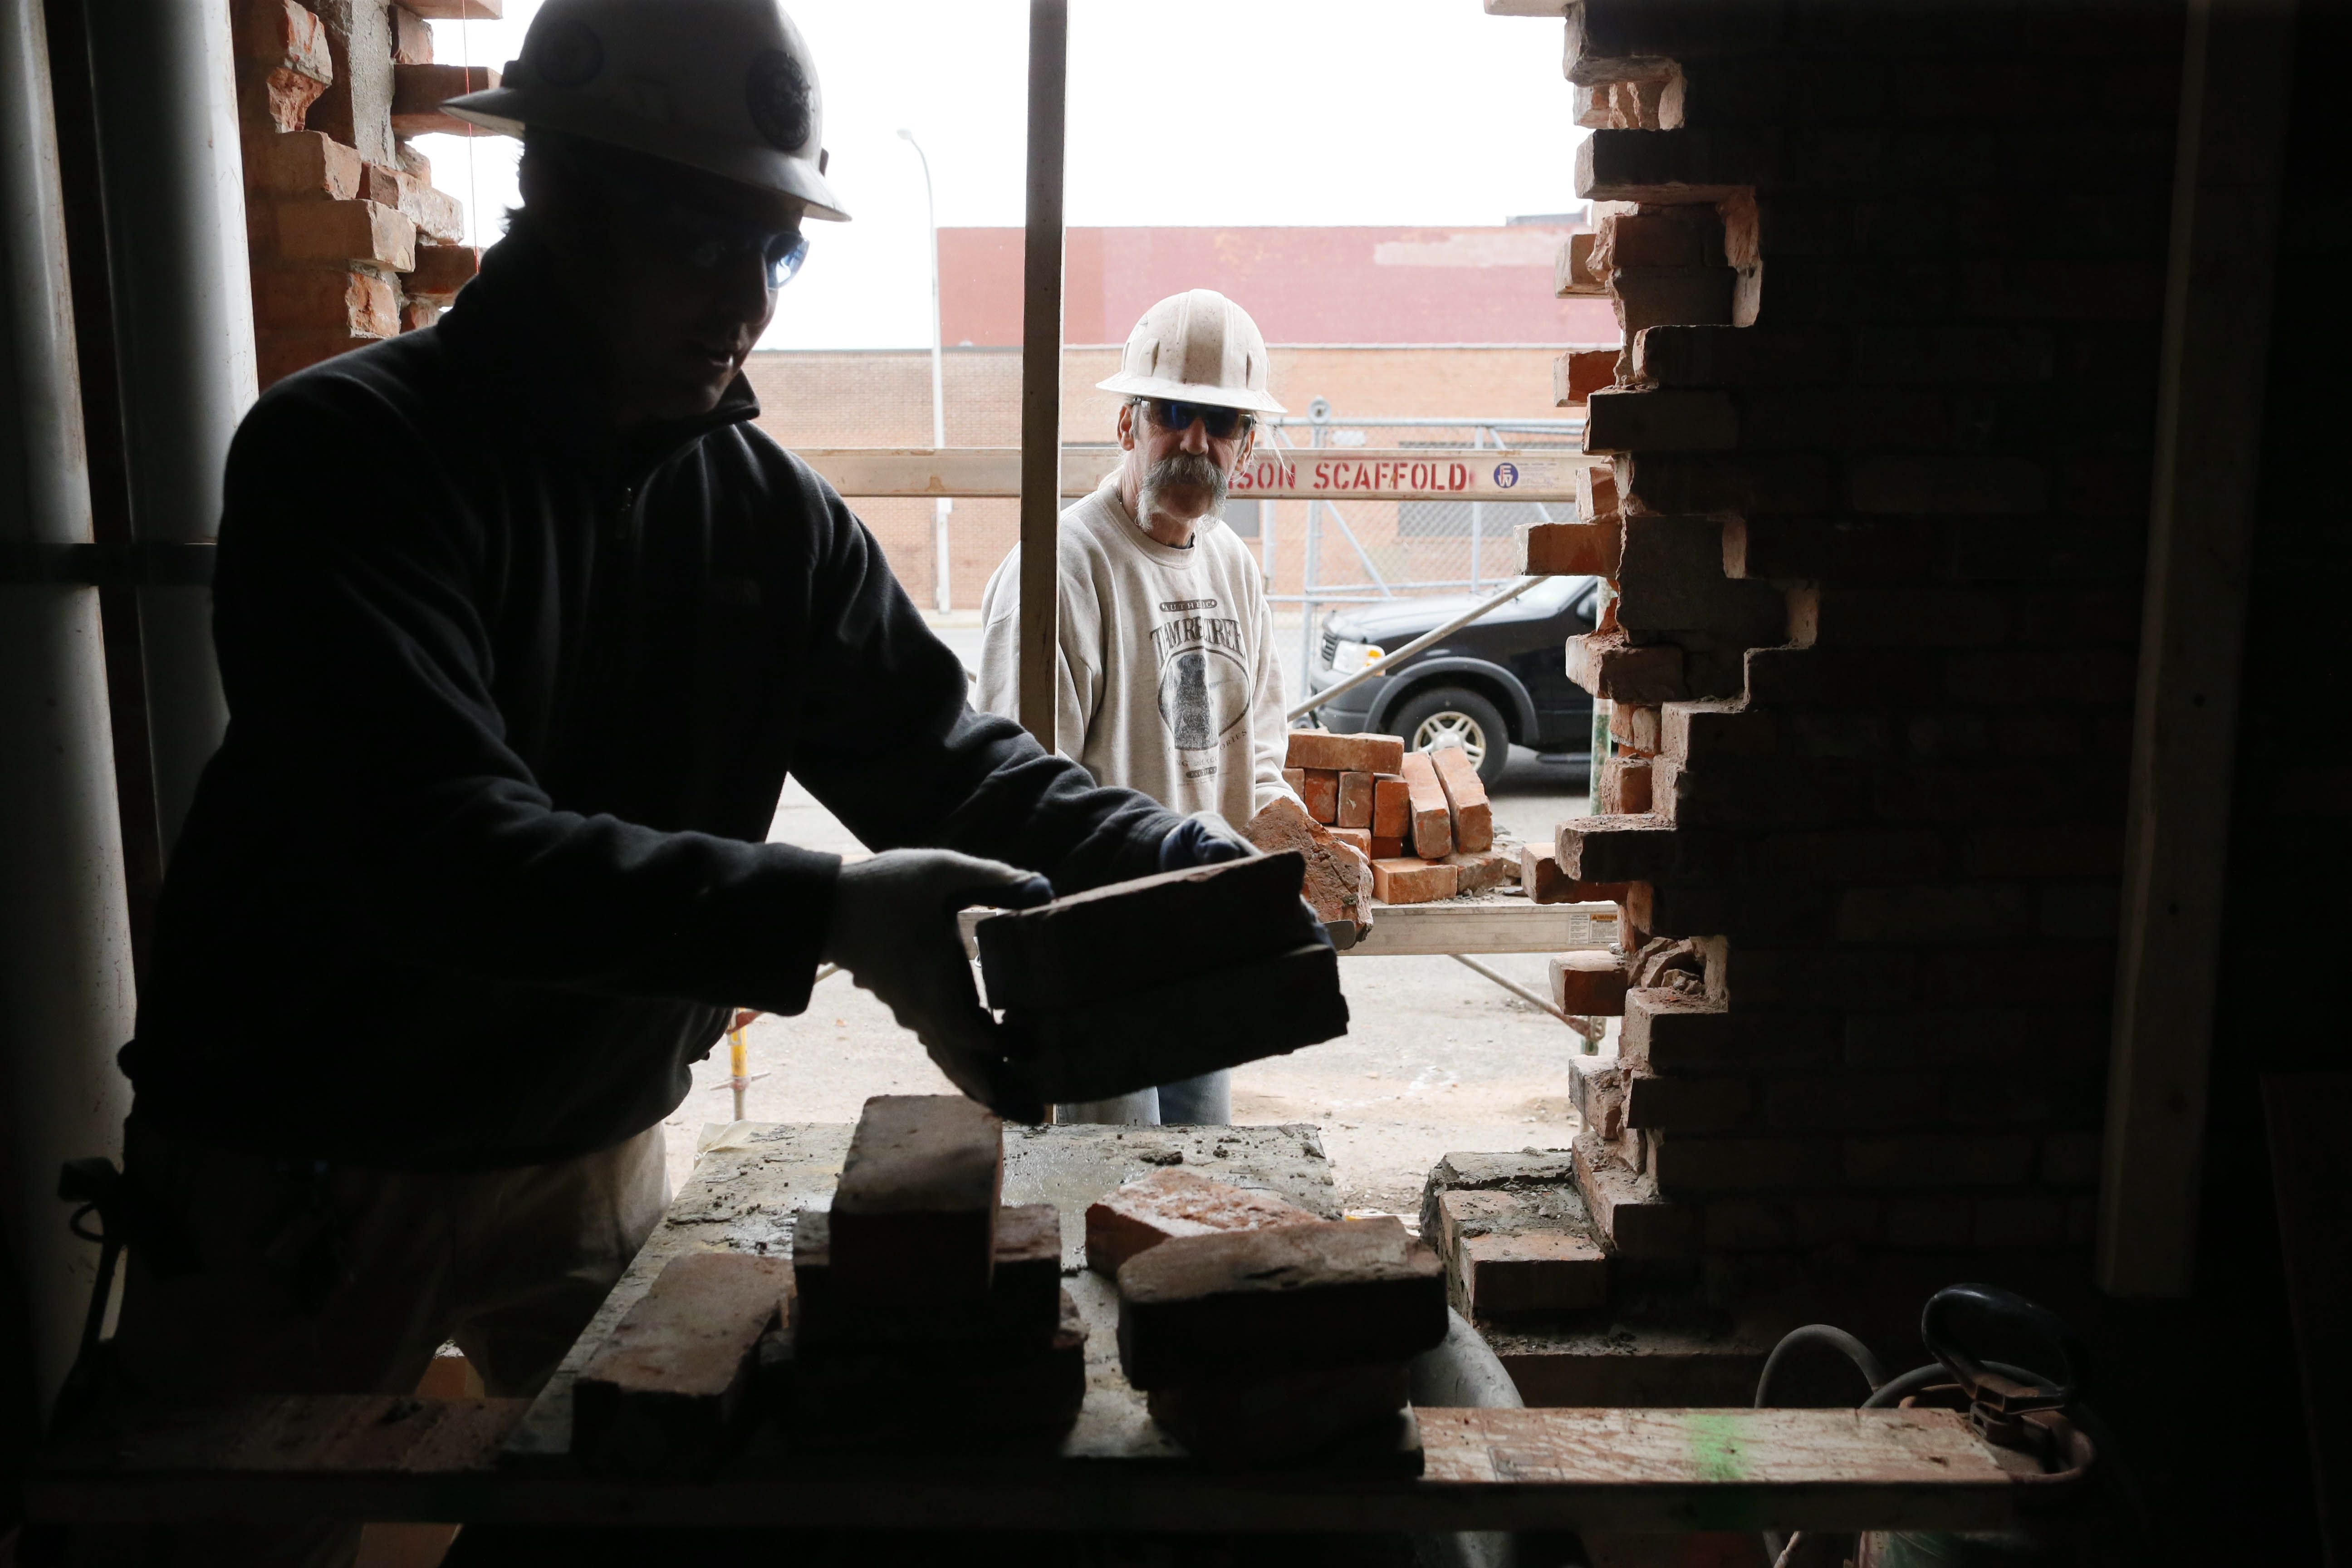 Masons Jay Poleszak, left, and Butch Kozma of Abraxis Masonry Restoration repair a brick wall at the former Planing Mill at 141 Elm St. that is under redevelopment into 22 apartments by TM Montante.